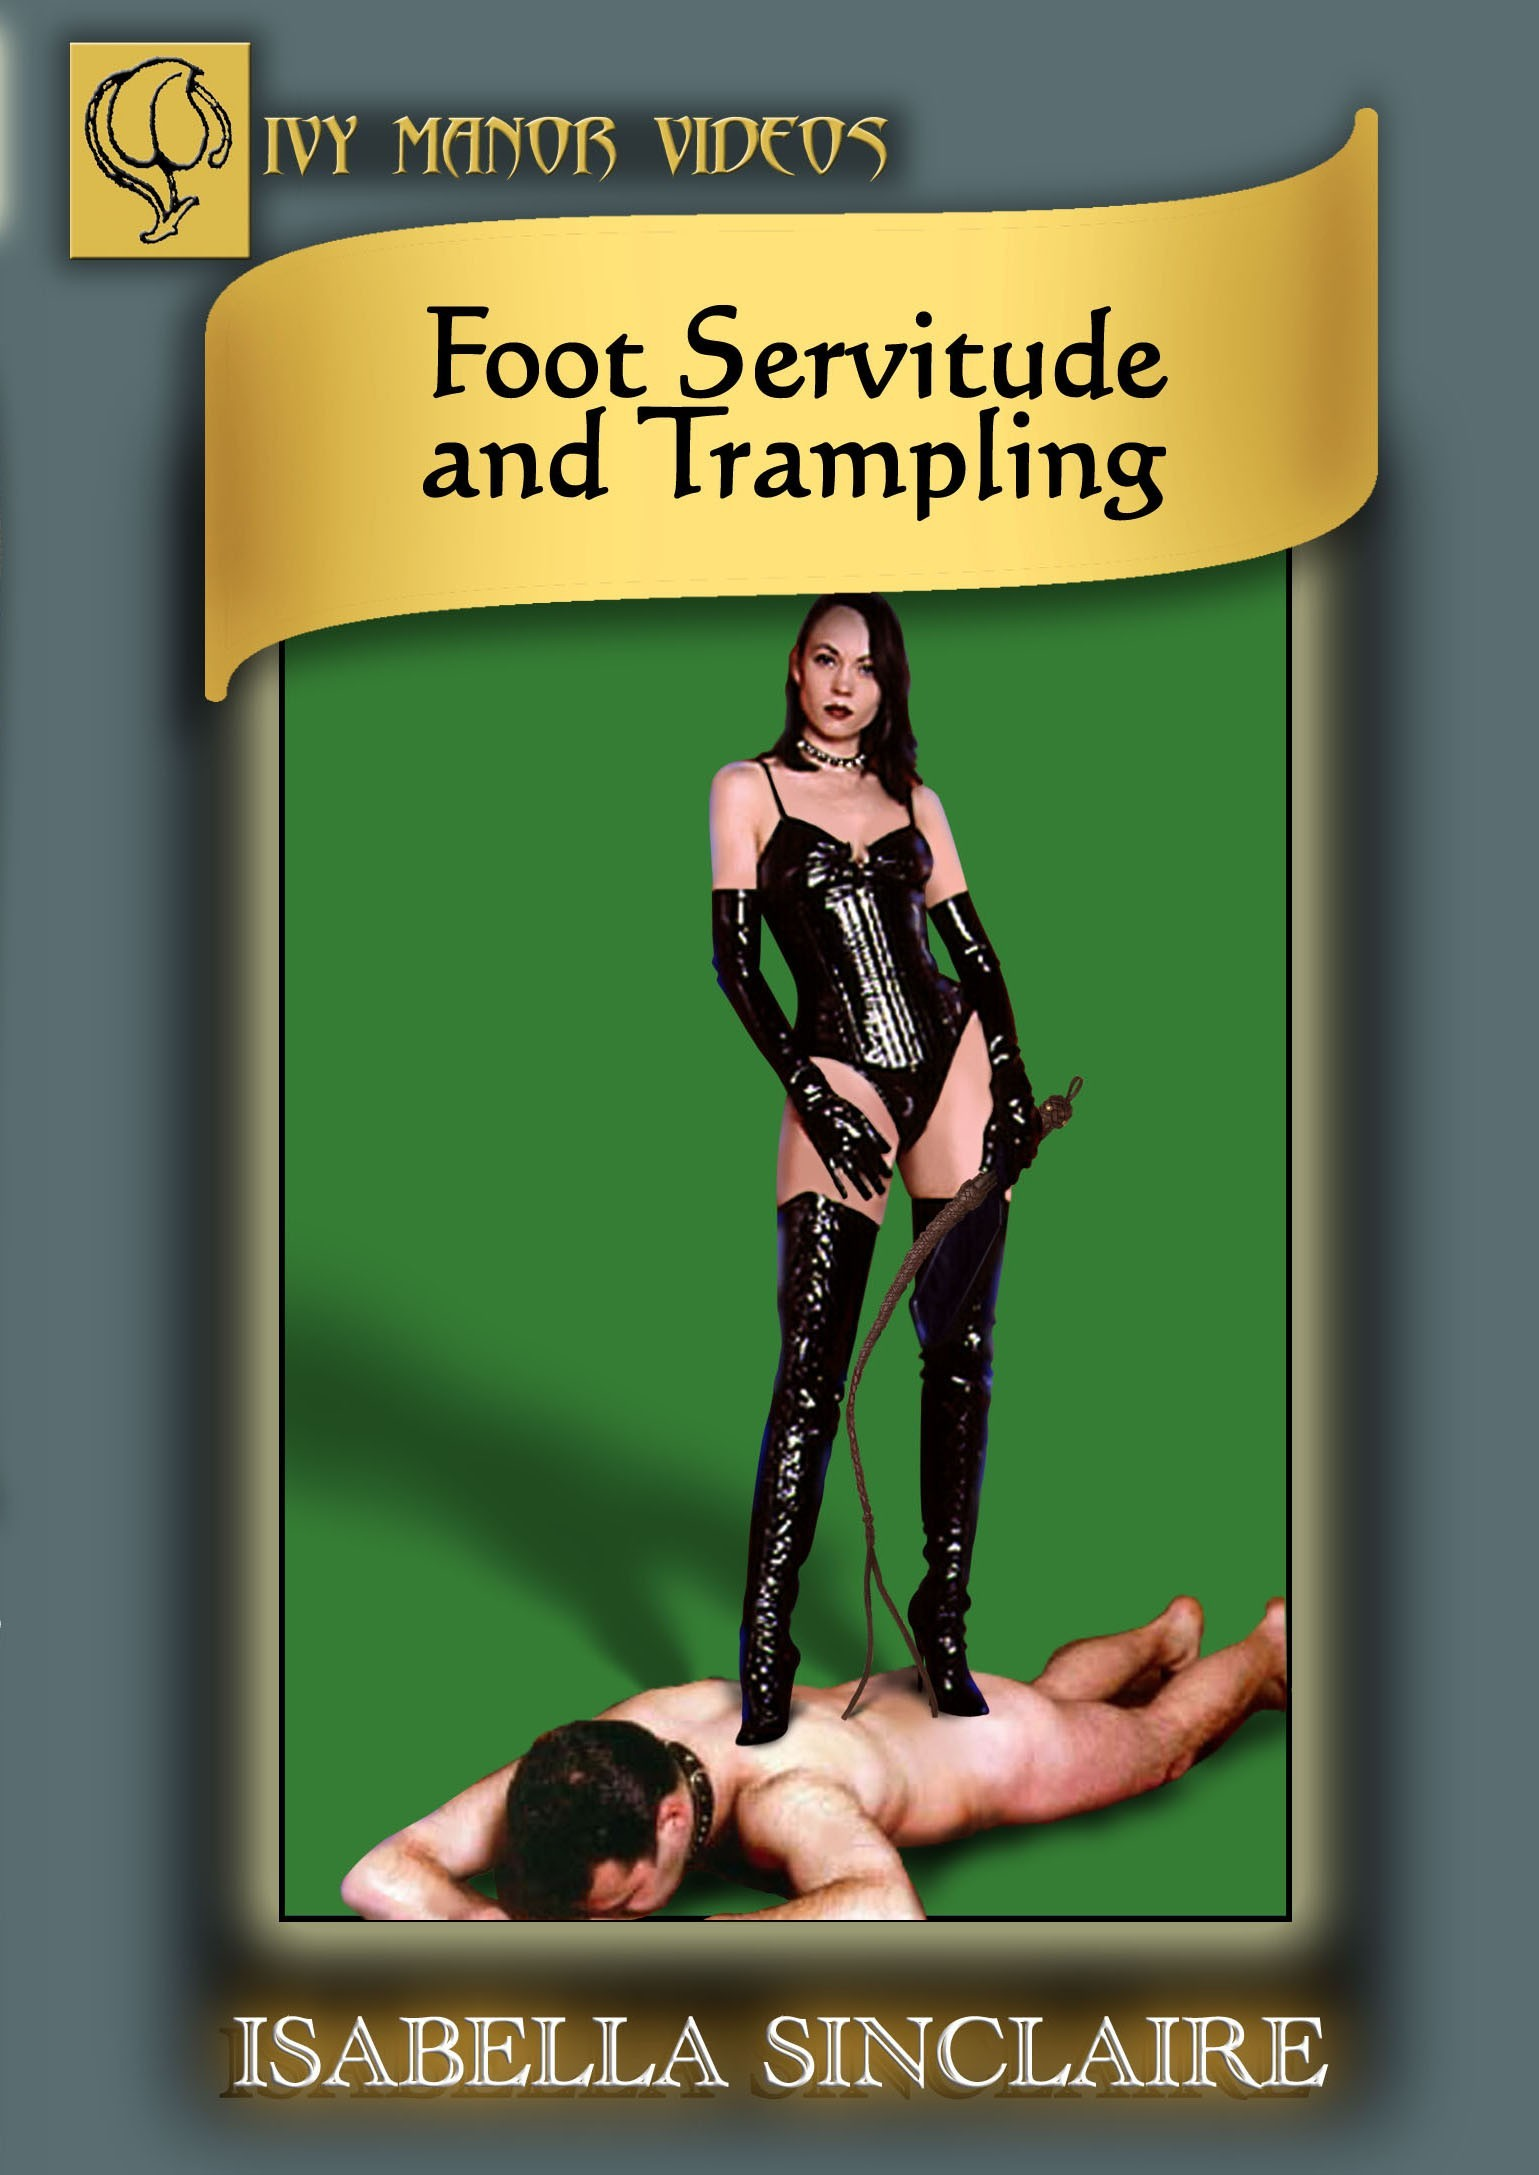 FOOT SERVITUDE AND TRAMPLING